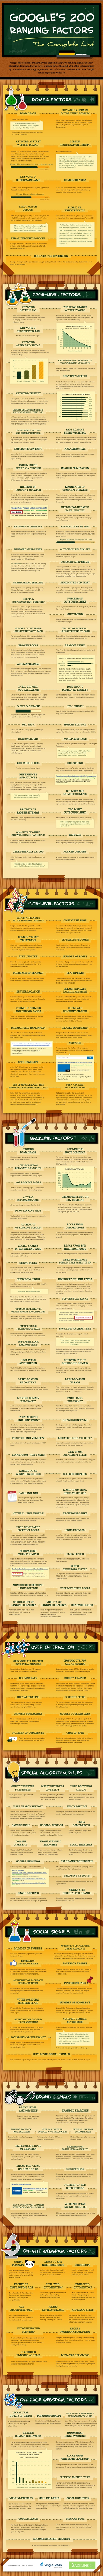 Google's 200 Ranking Factors infographic